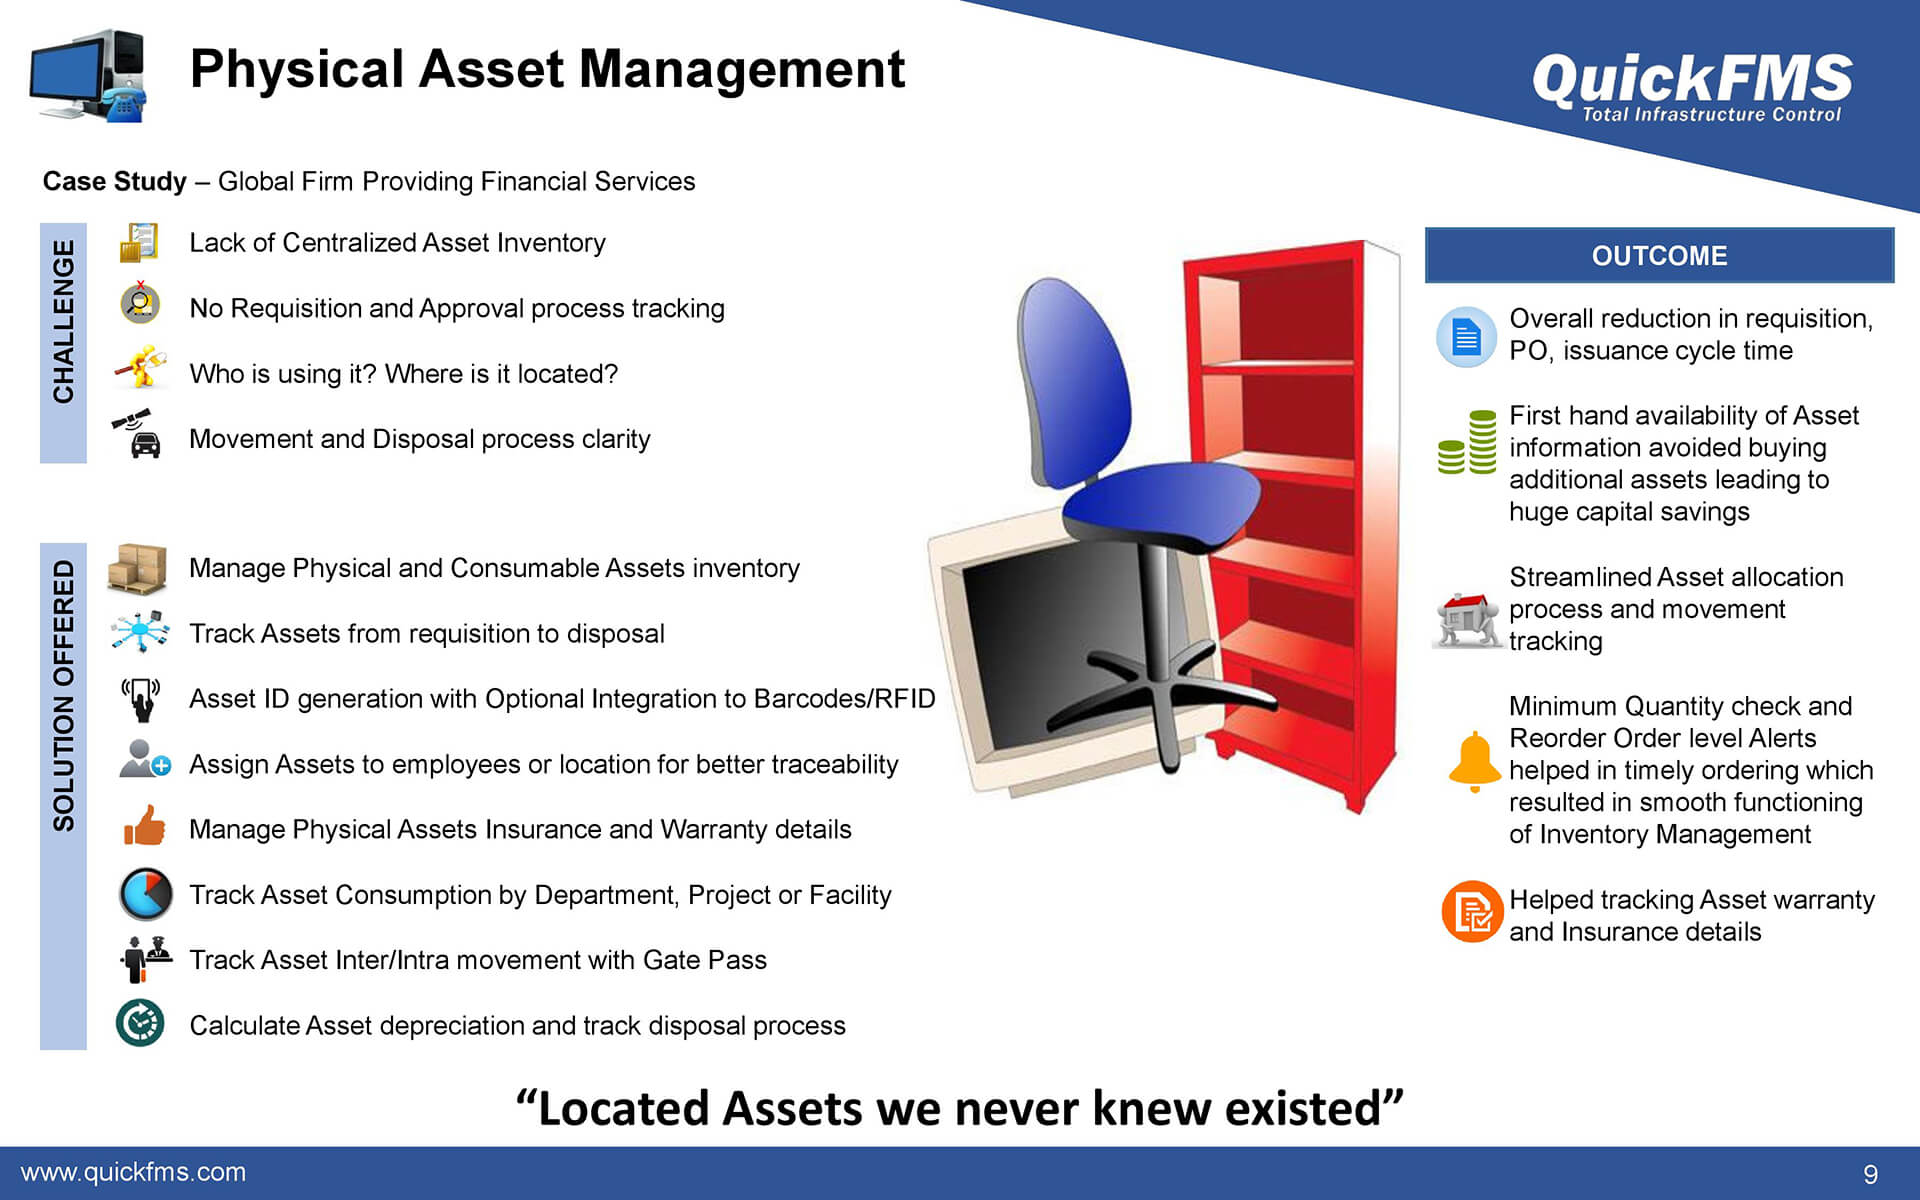 Overview presentation on Physical Asset Management - QuickFMS